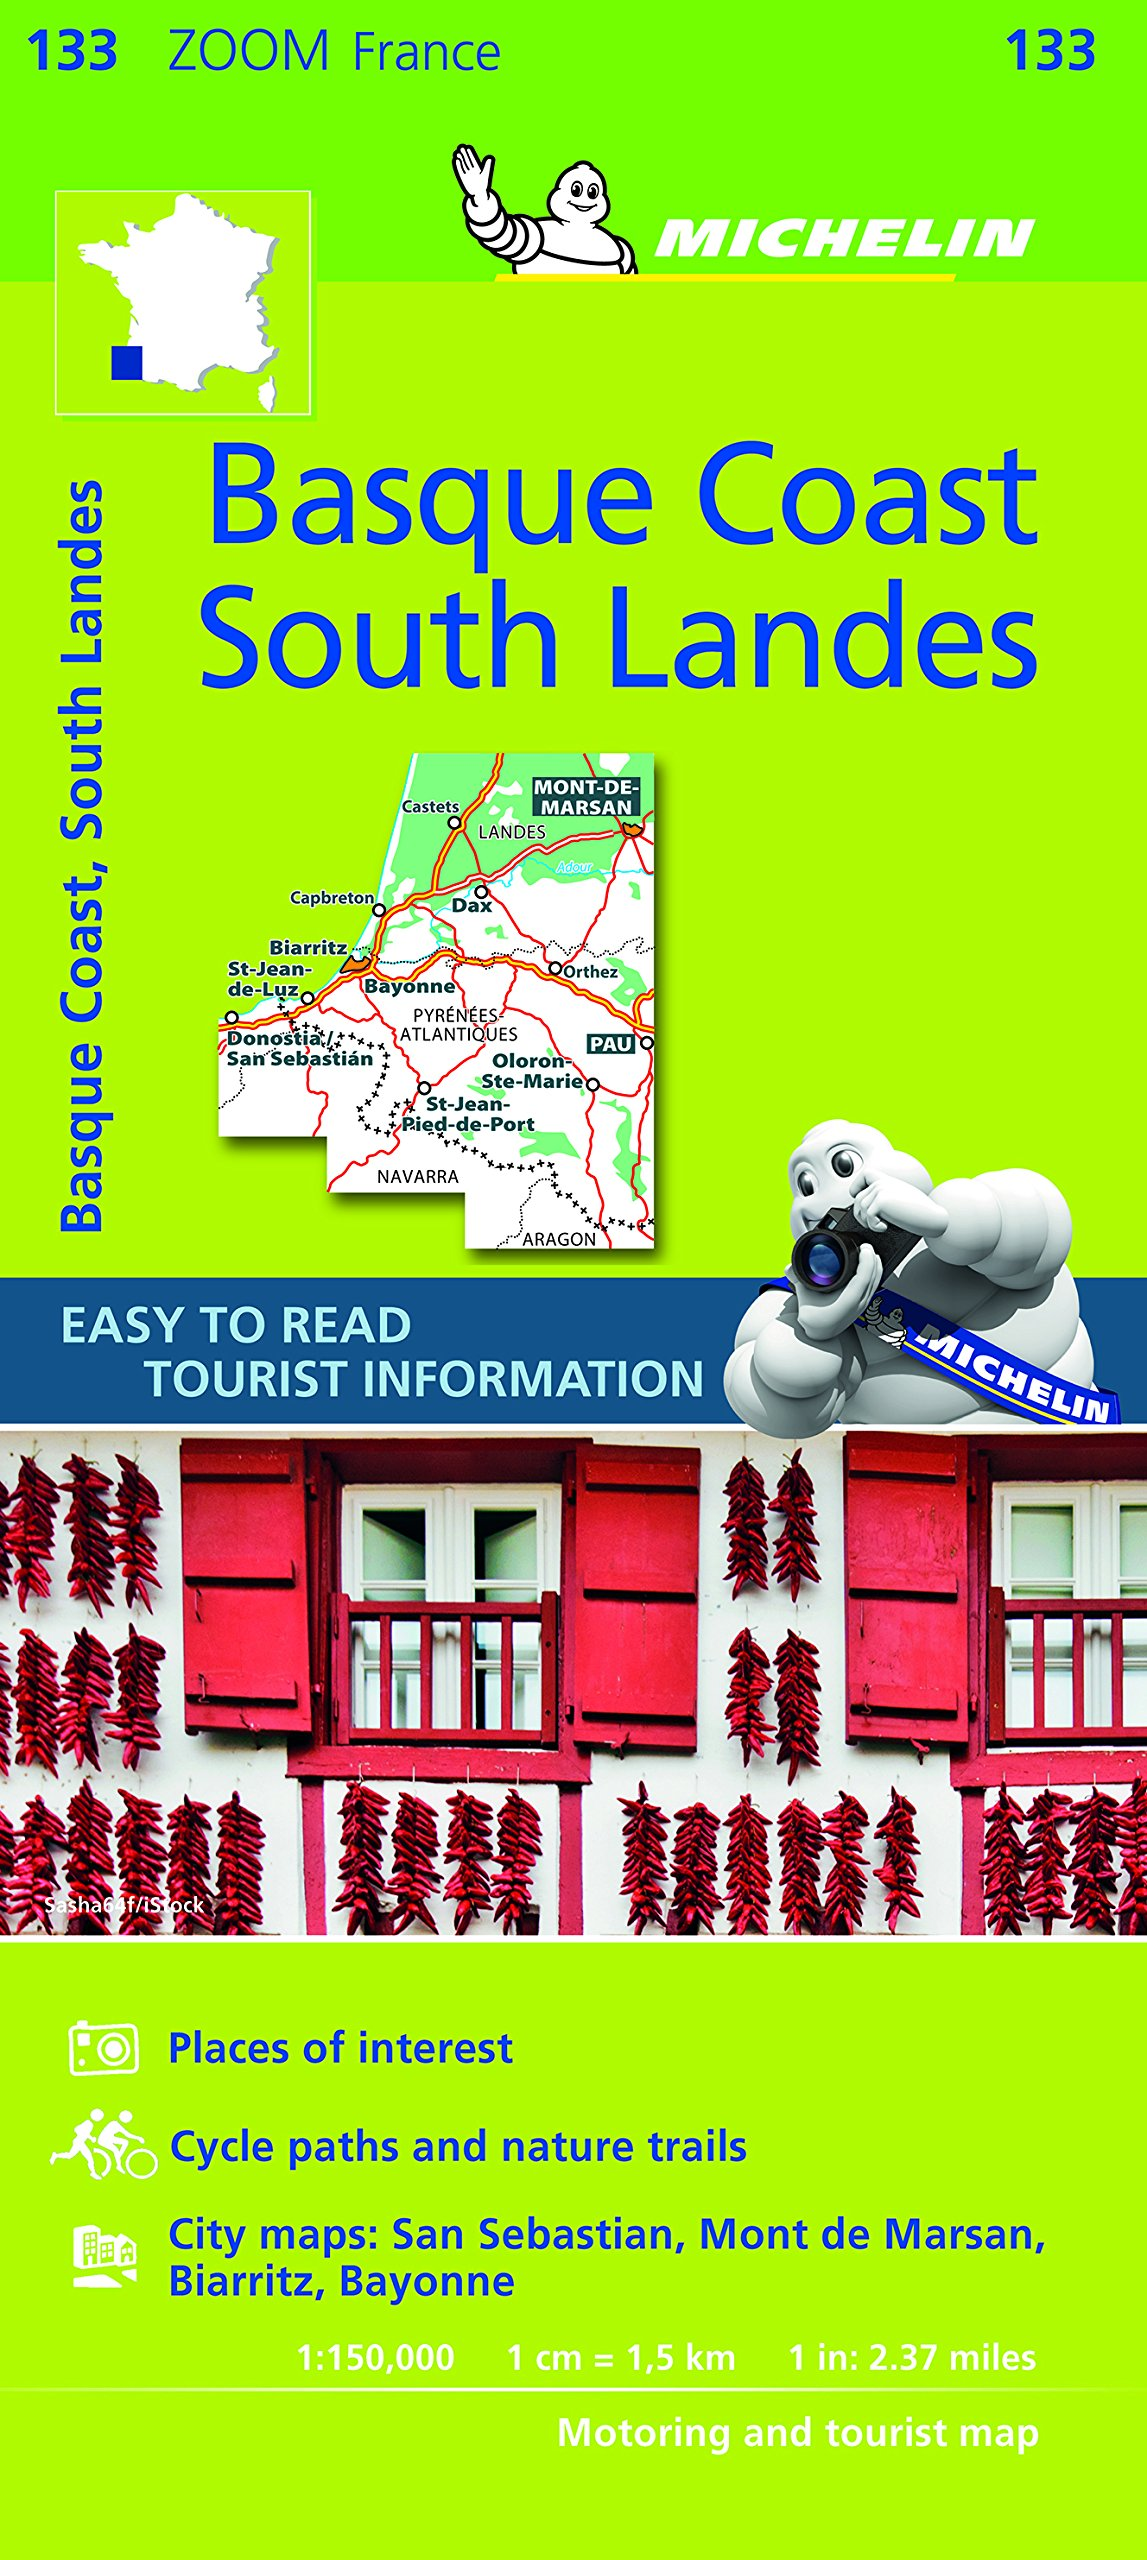 Map South Of France Coast.Michelin Basque Coast South Landes Zoom Map 133 Michelin Zoom